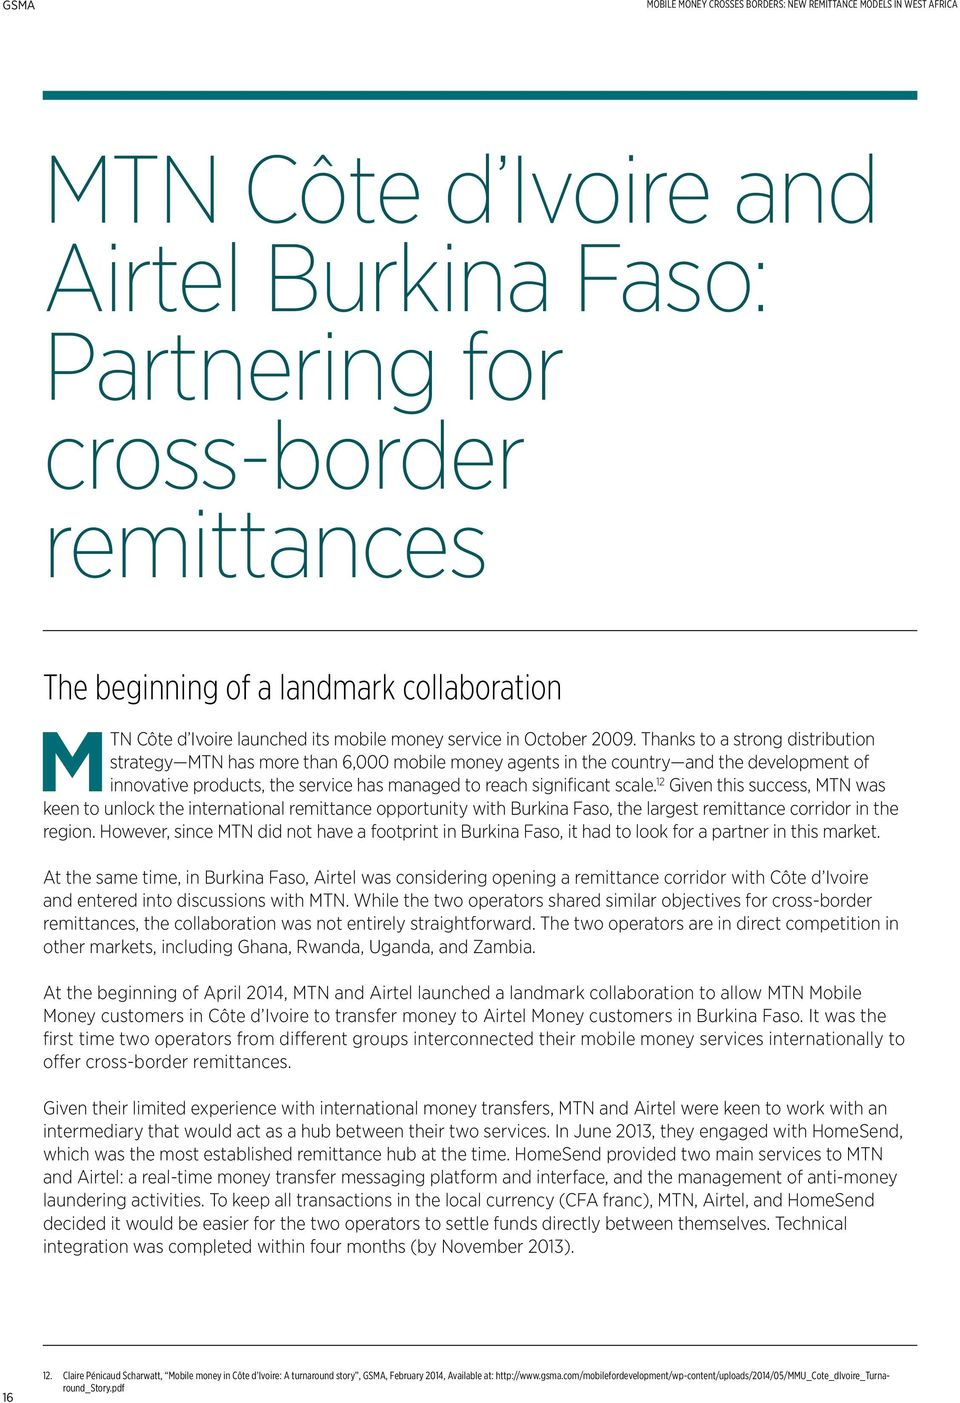 12 Given this success, MTN was keen to unlock the international remittance opportunity with Burkina Faso, the largest remittance corridor in the region.